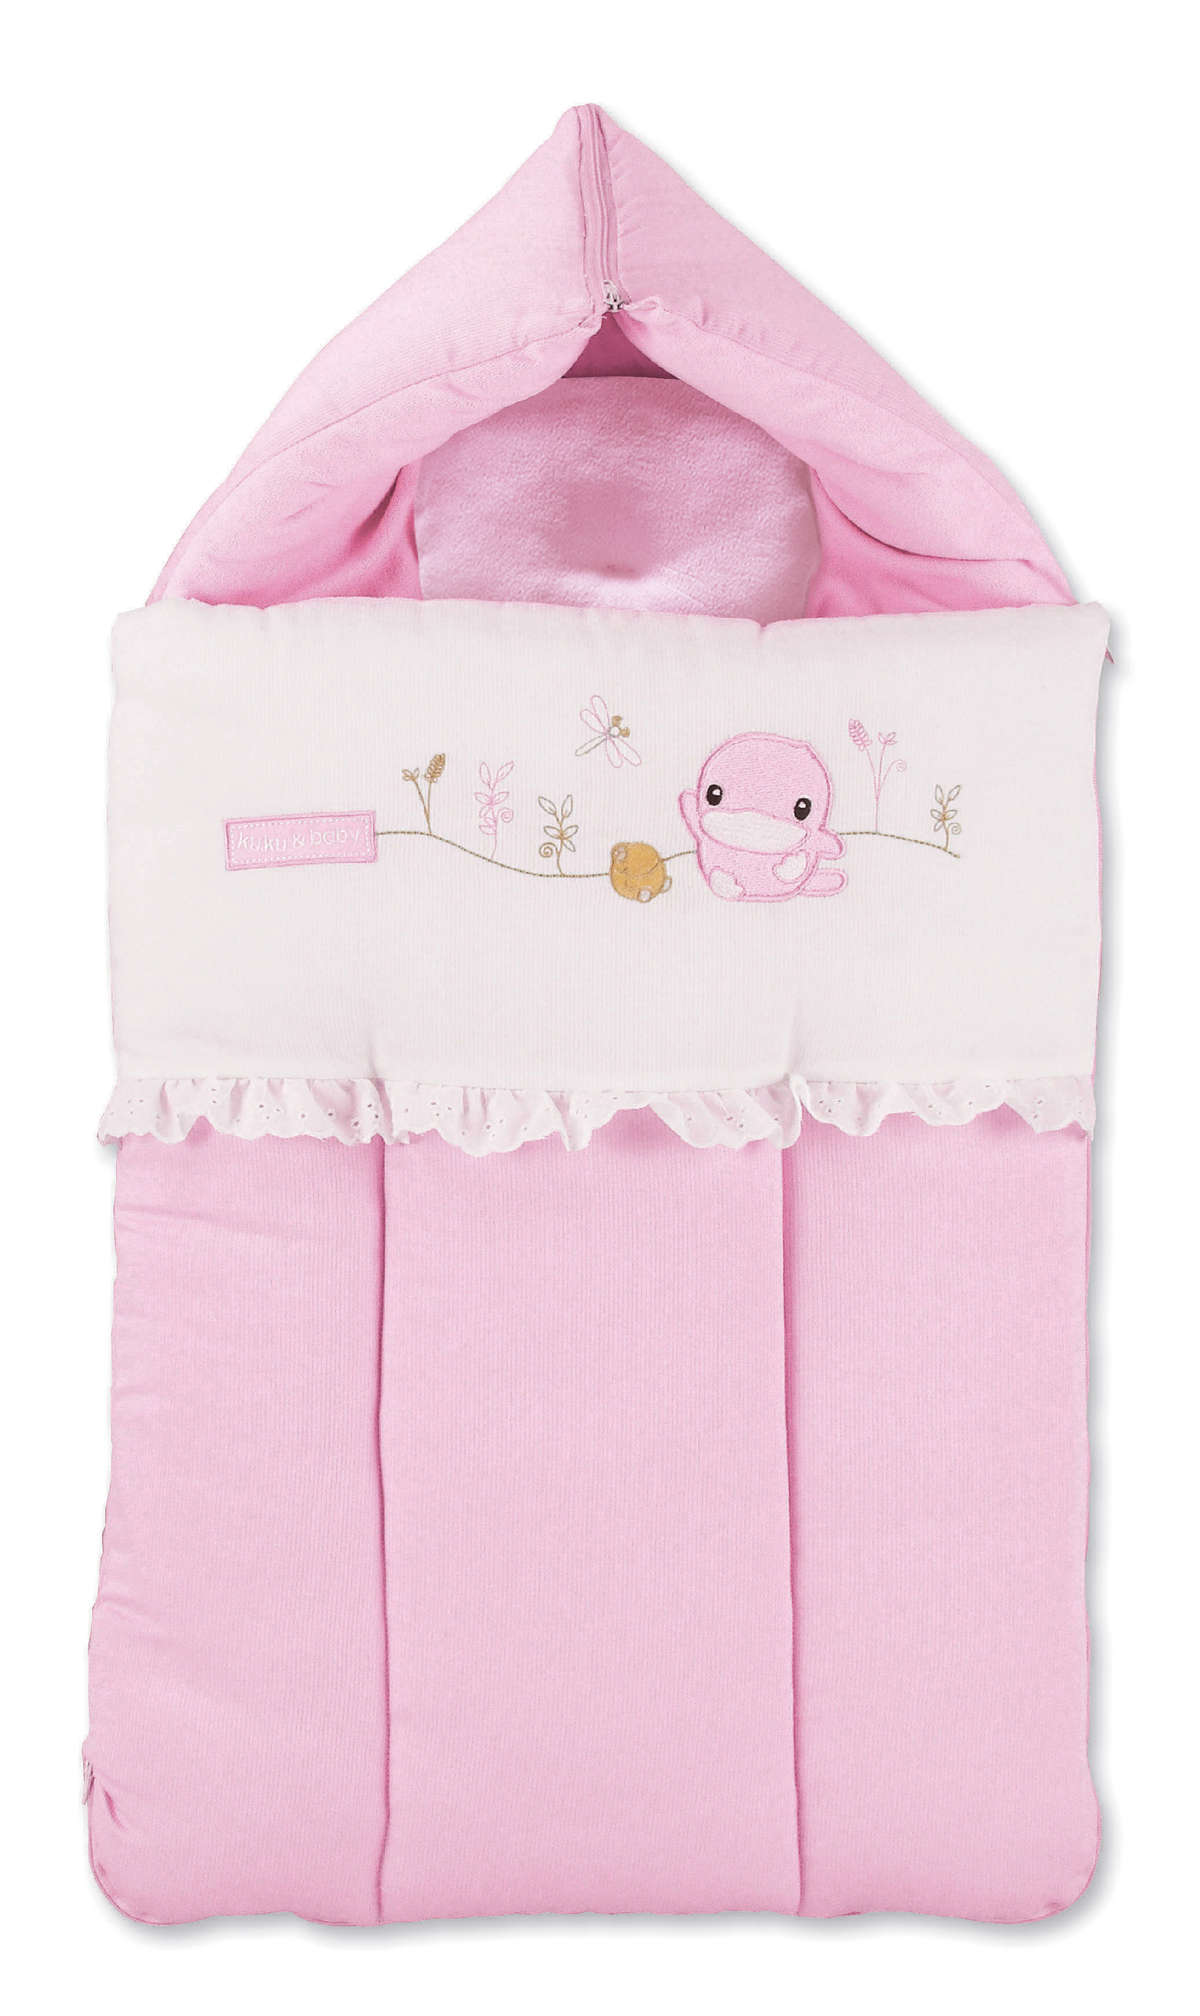 Swaddle Comforter - Pink